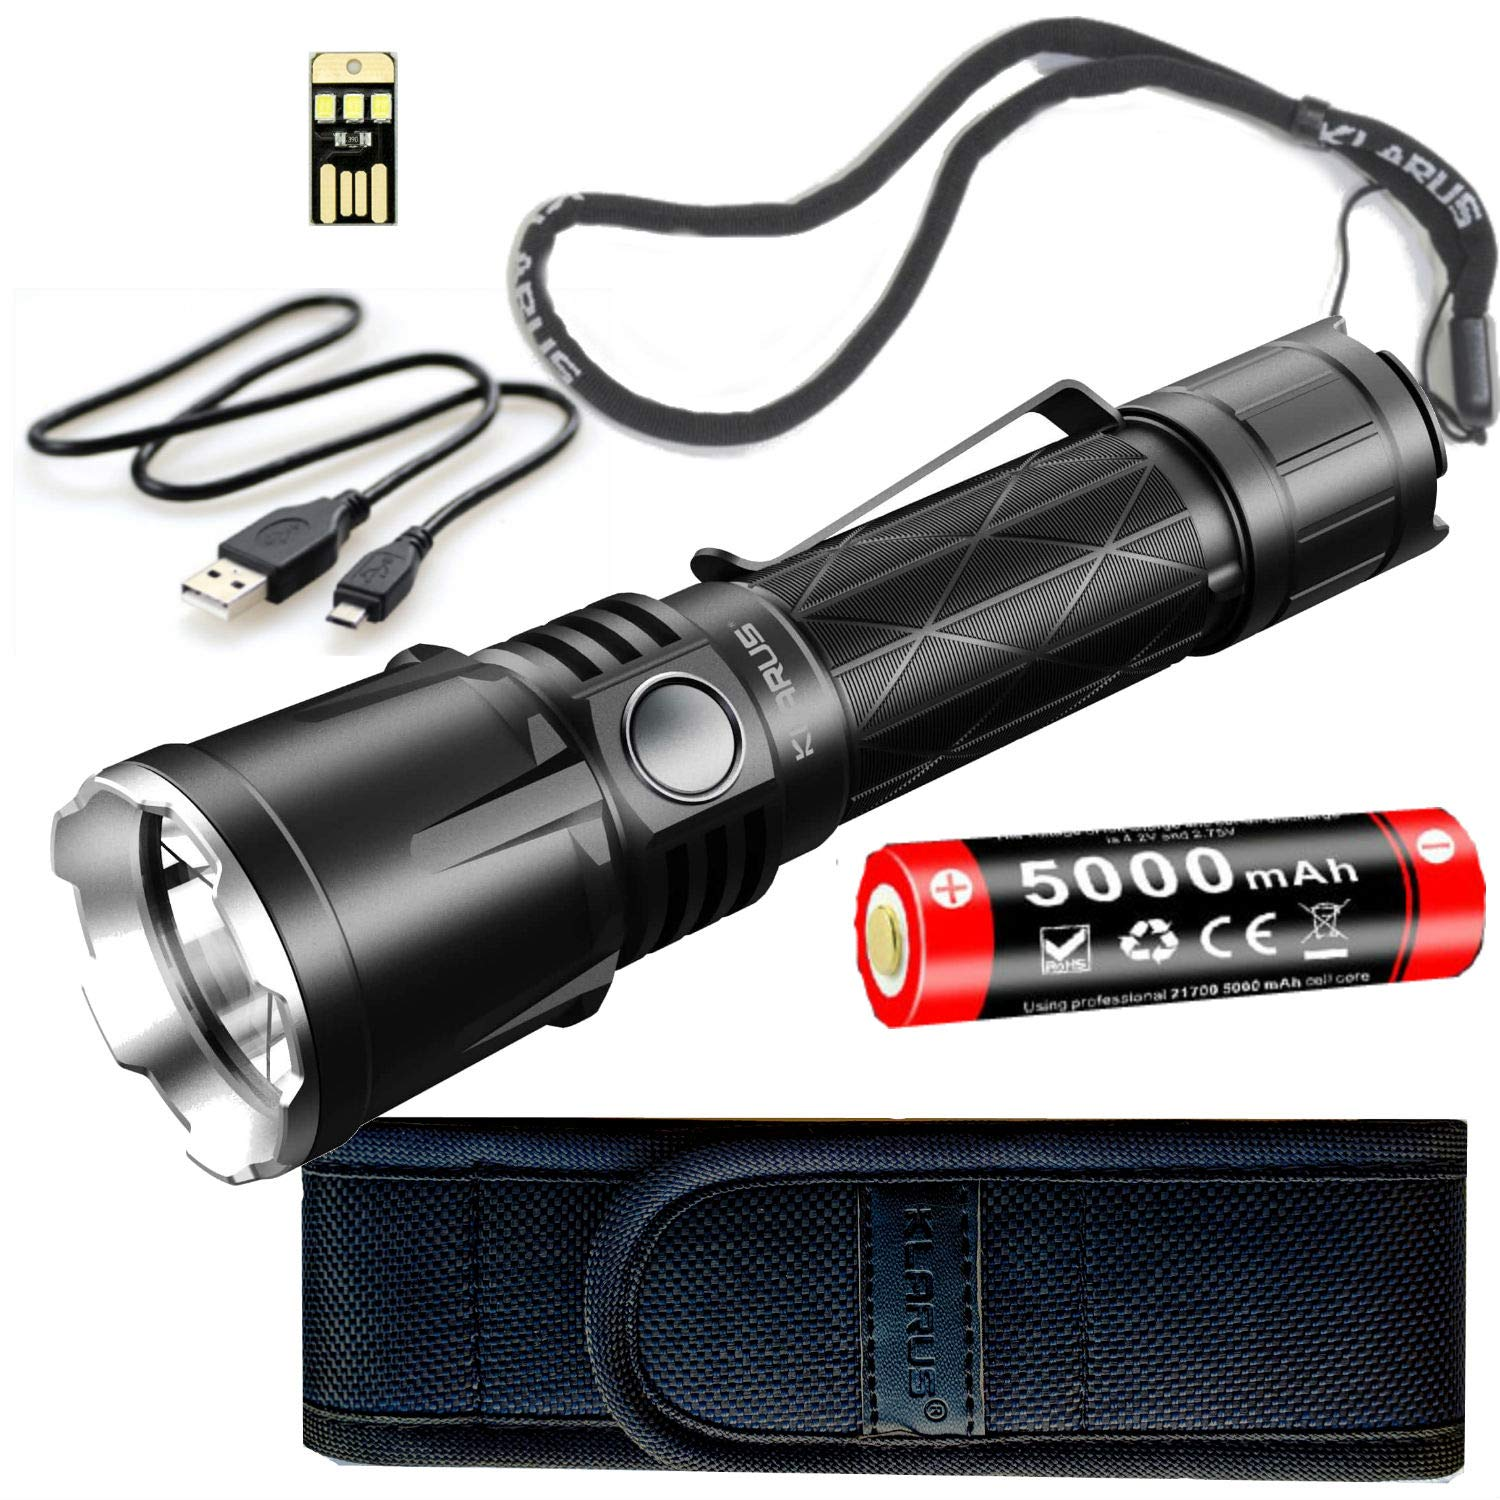 3200 Lumens Klarus XT11X Rechargeable Tactical Flashlight CREE XHP70.2 LED Flashlight Bundled with 1 Lumintrail USB Car Adapter and 1 Lumintrail USB Wall Adapter